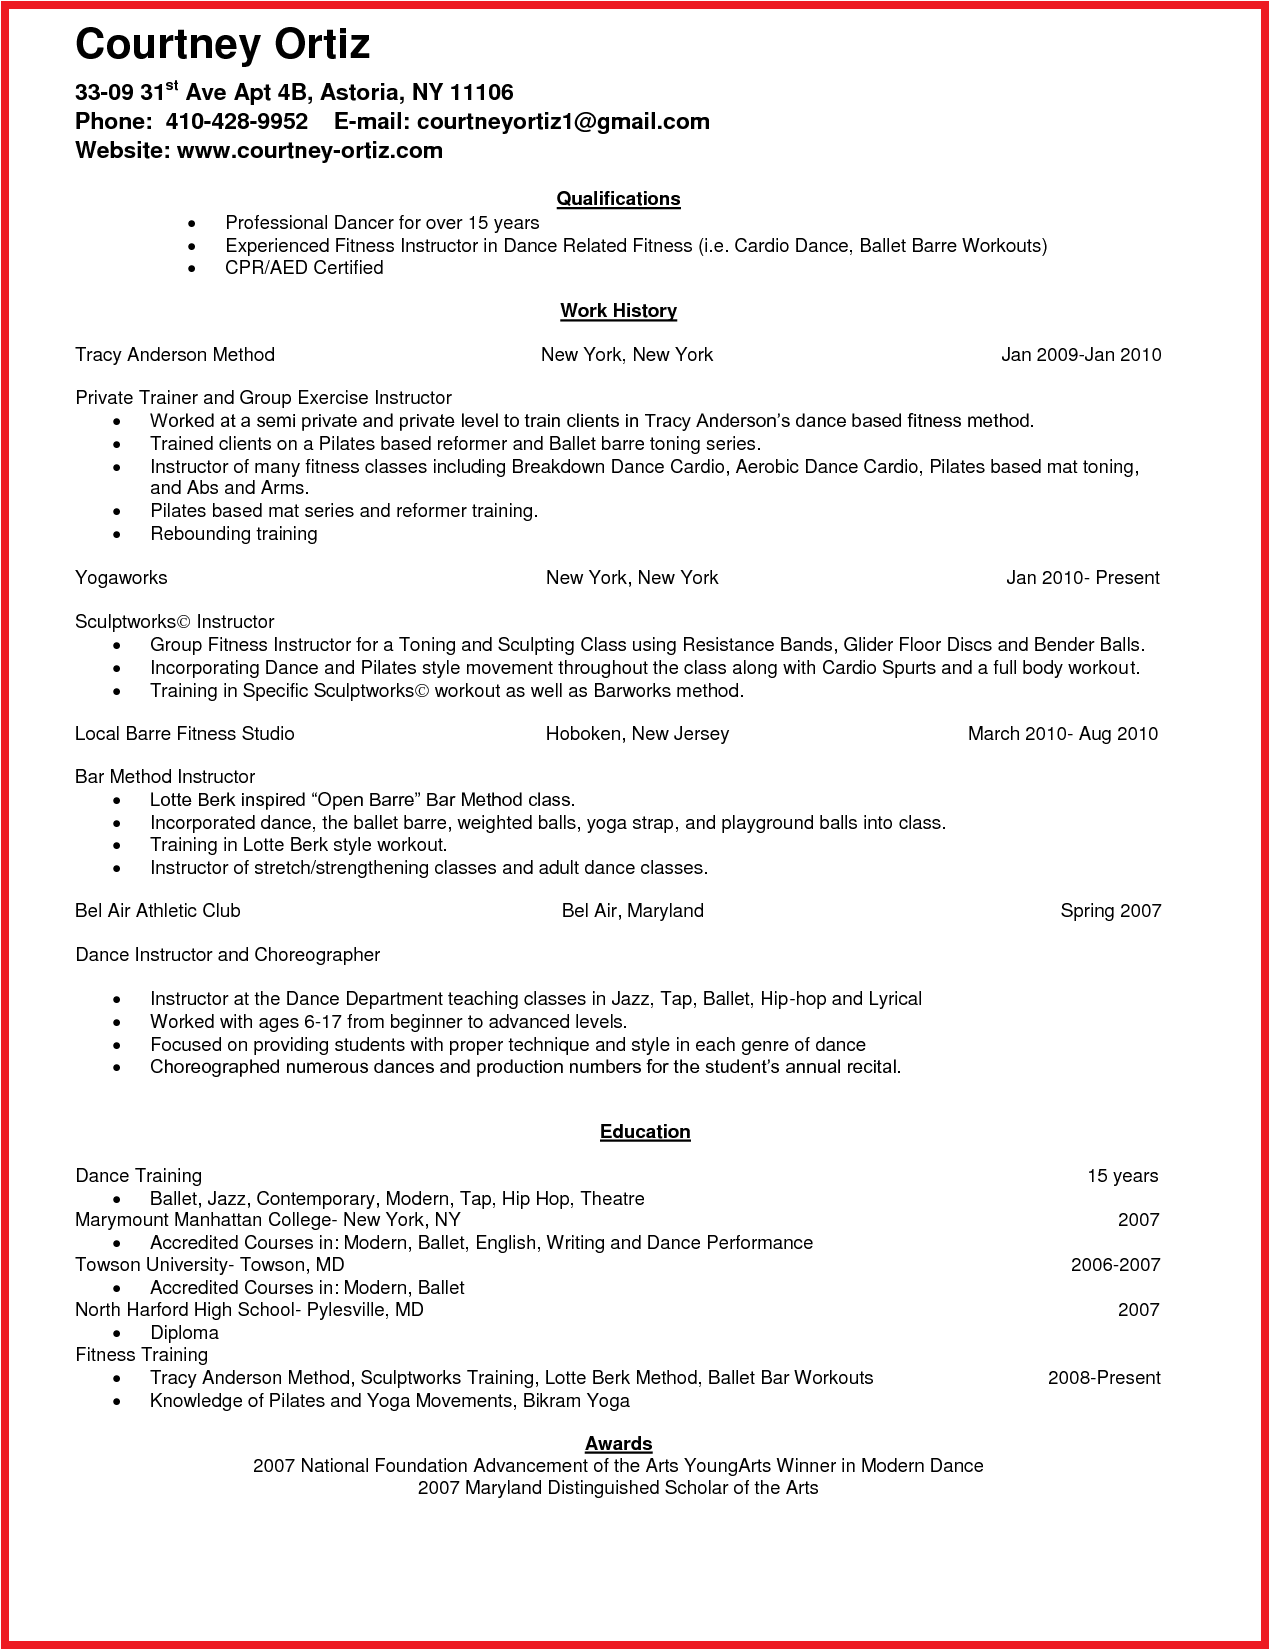 Cv For Teachers Http Www Teachers Resumes Com Au Teachers Professional Resumes Works With E Teacher Resume Template Teacher Resume Teacher Resume Examples